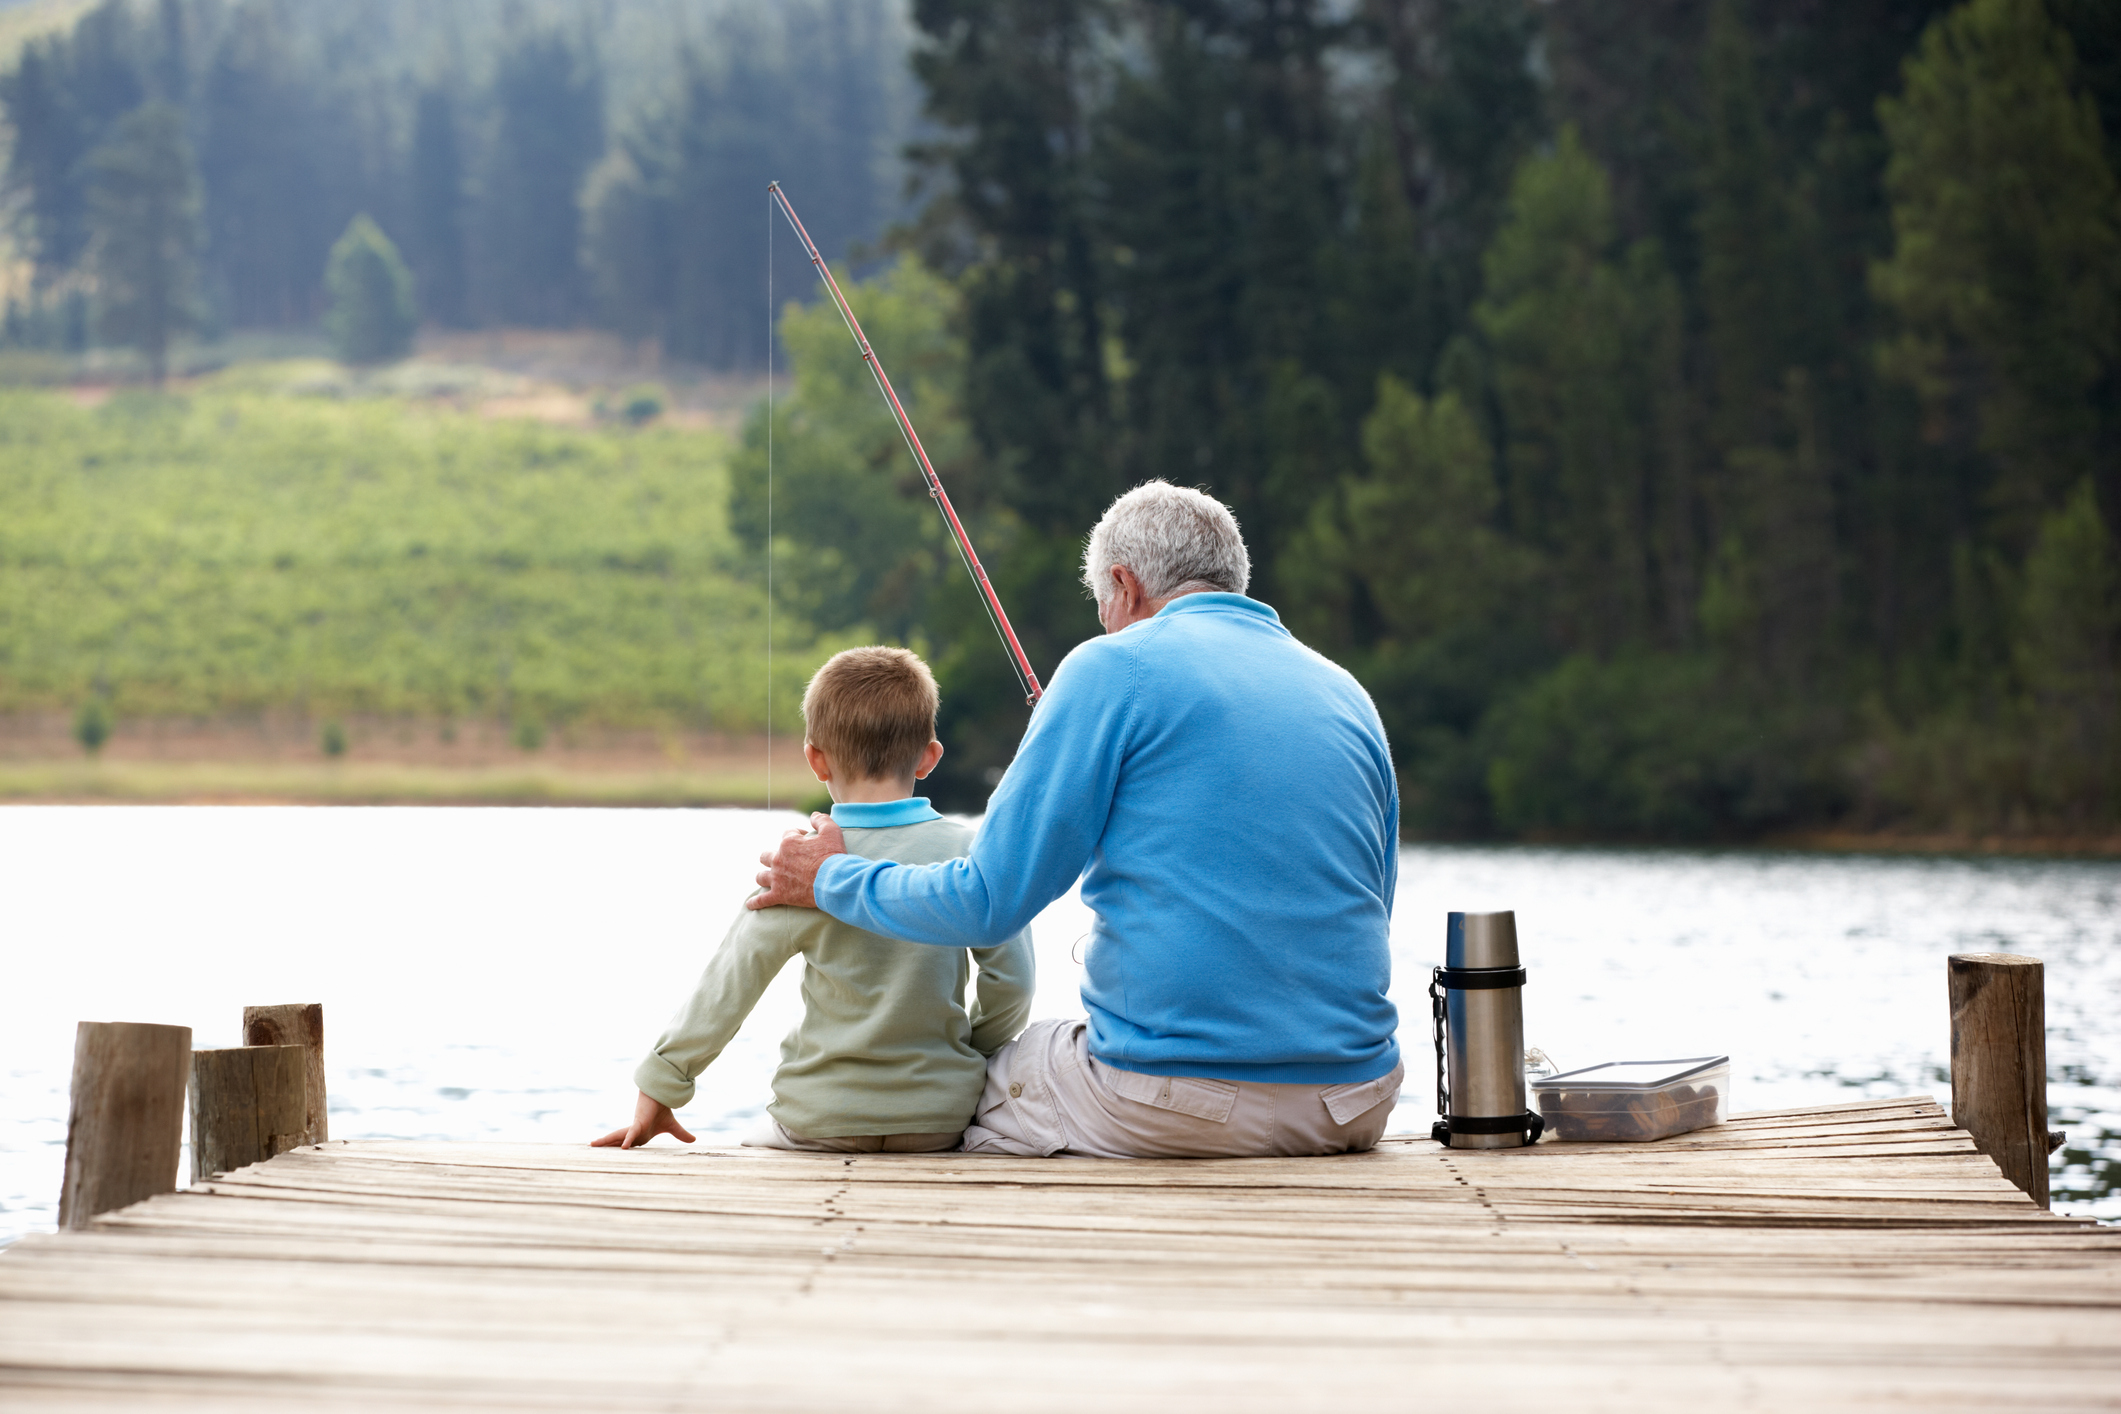 A grandad fishing with his grandson (Thinkstock/PA)